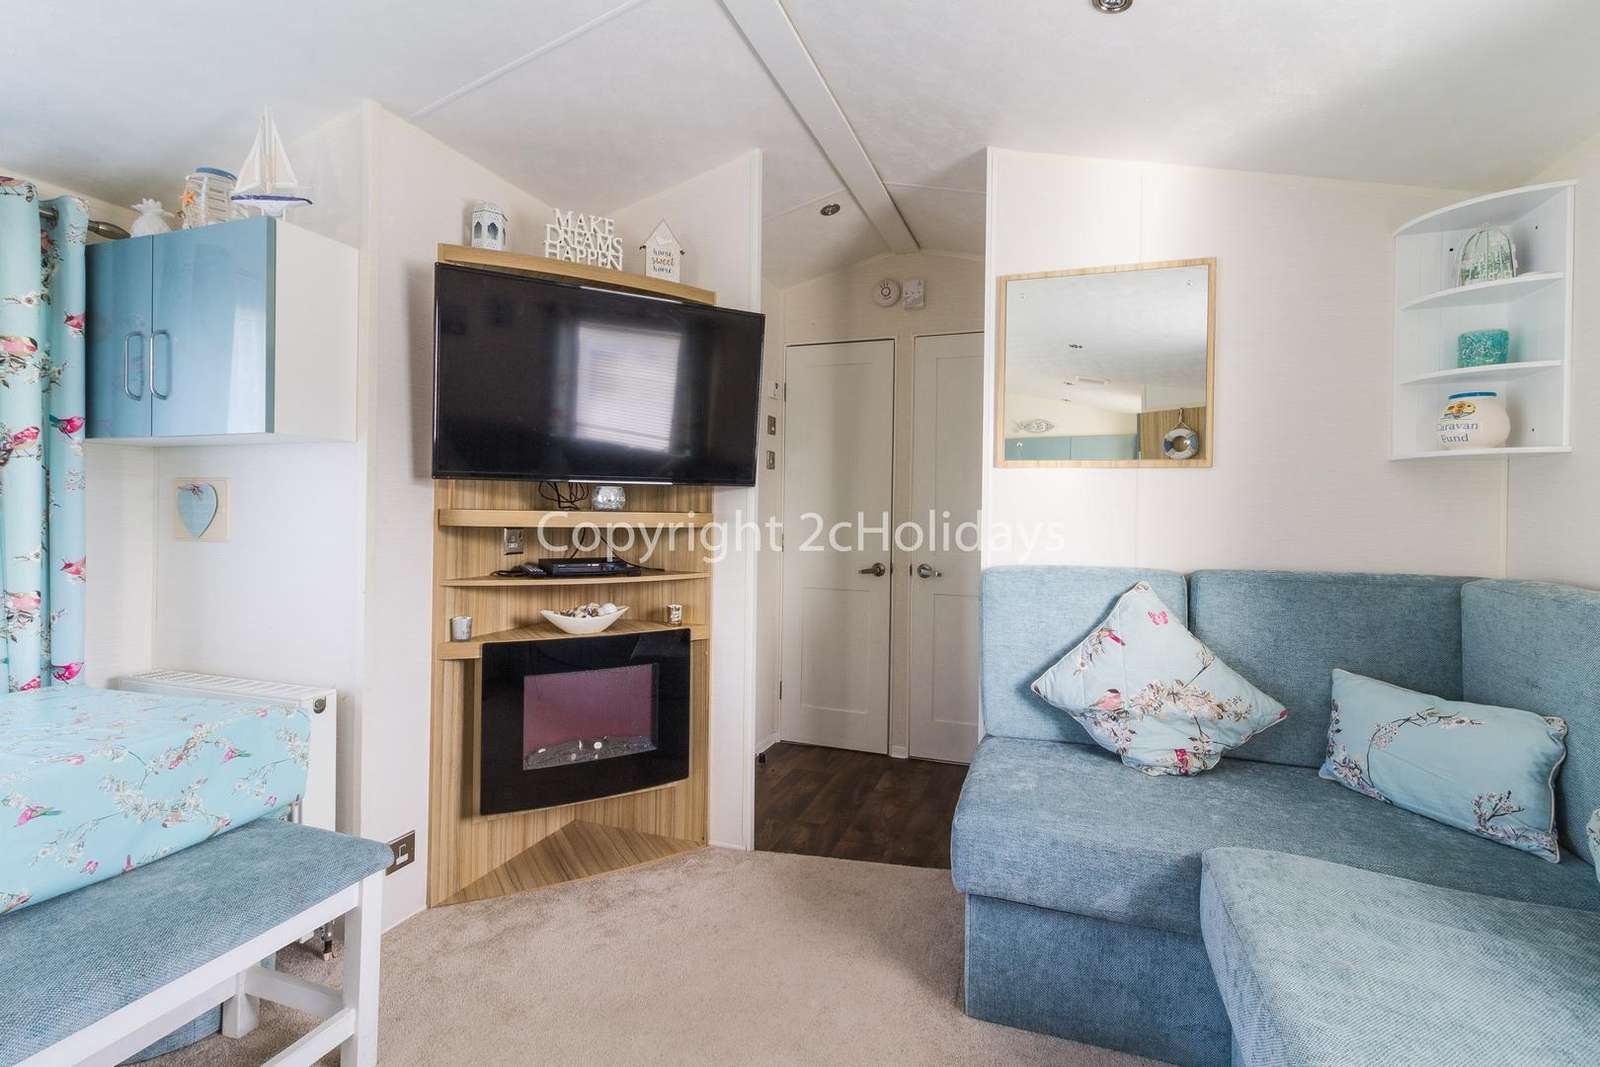 The lounge area includes a TV and a double sofa bed!